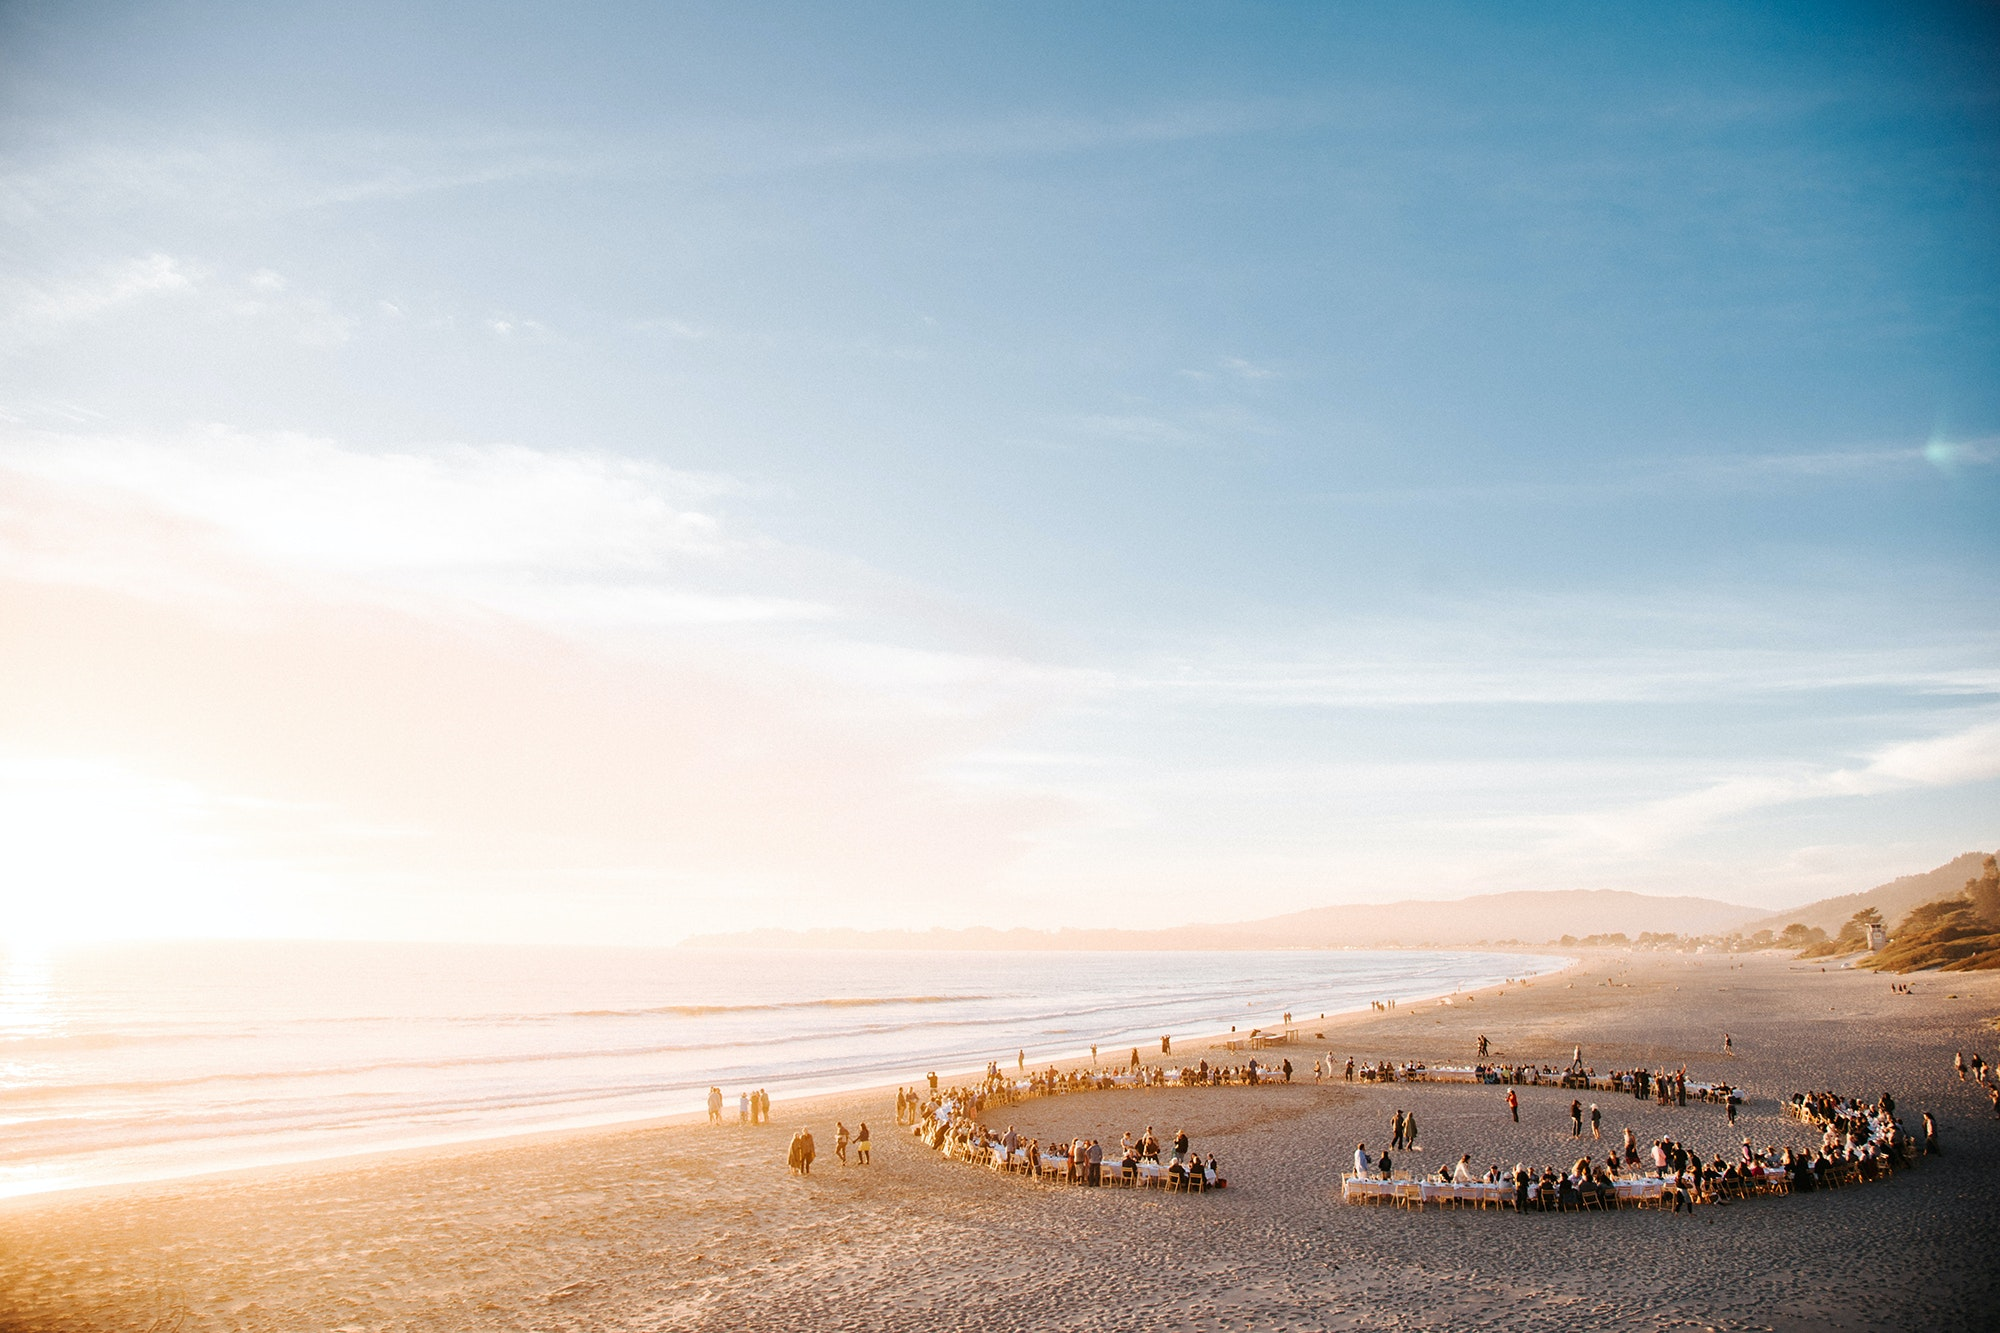 This year's event on Stinson Beach, near San Francisco, takes place on November 9.